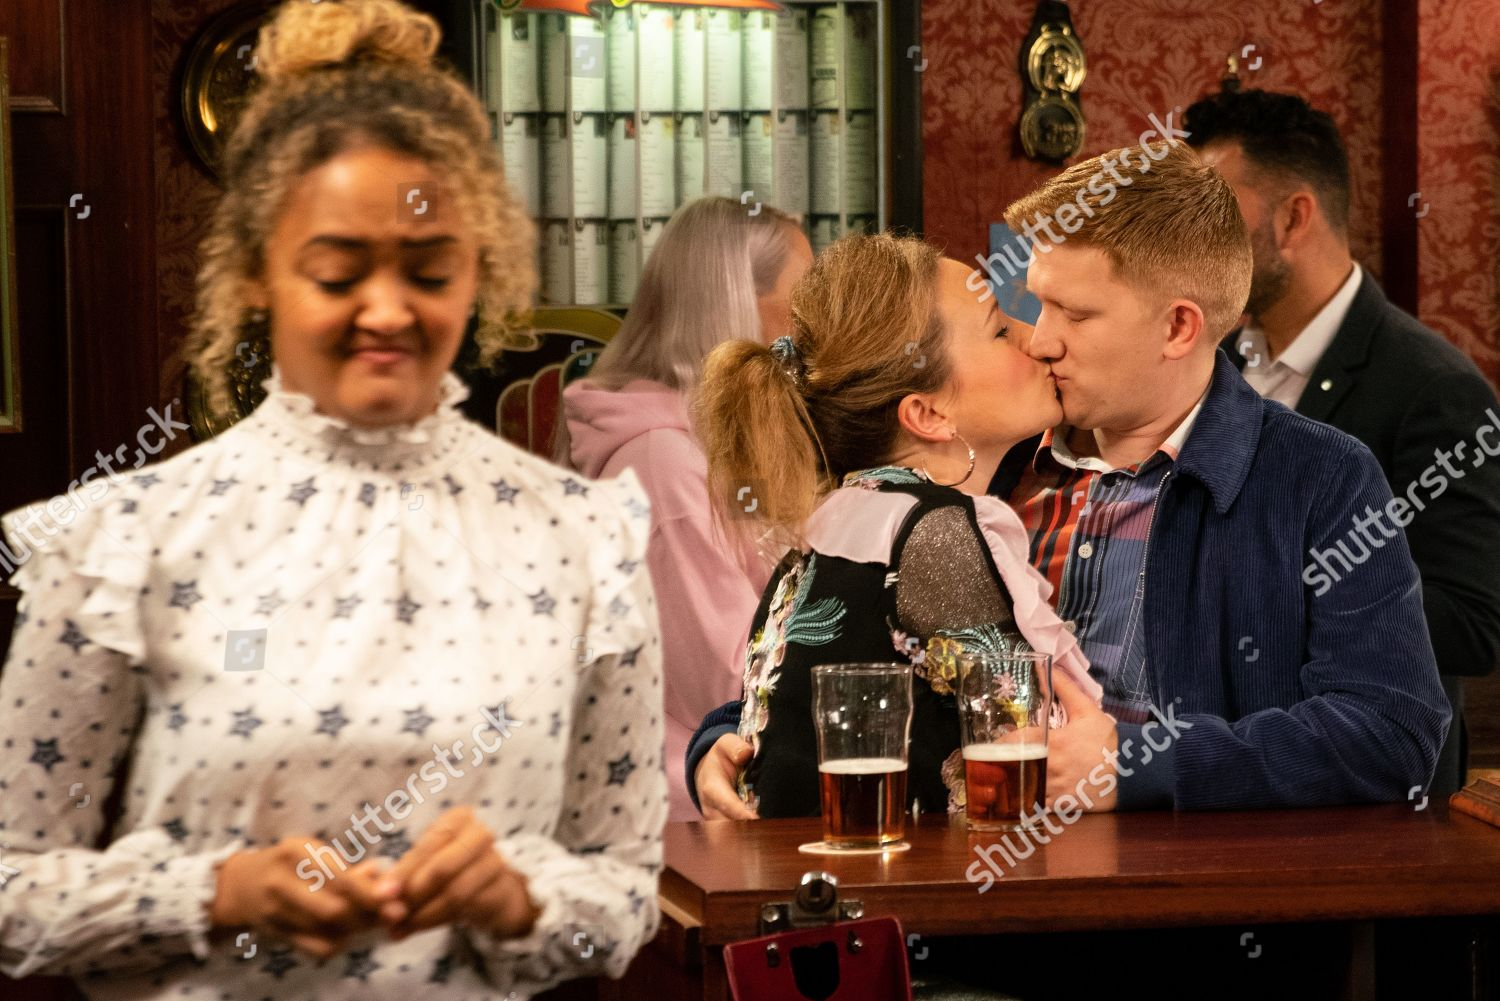 Ep 9689 Friday 8th February 2019 2nd Ep Chesney Editorial